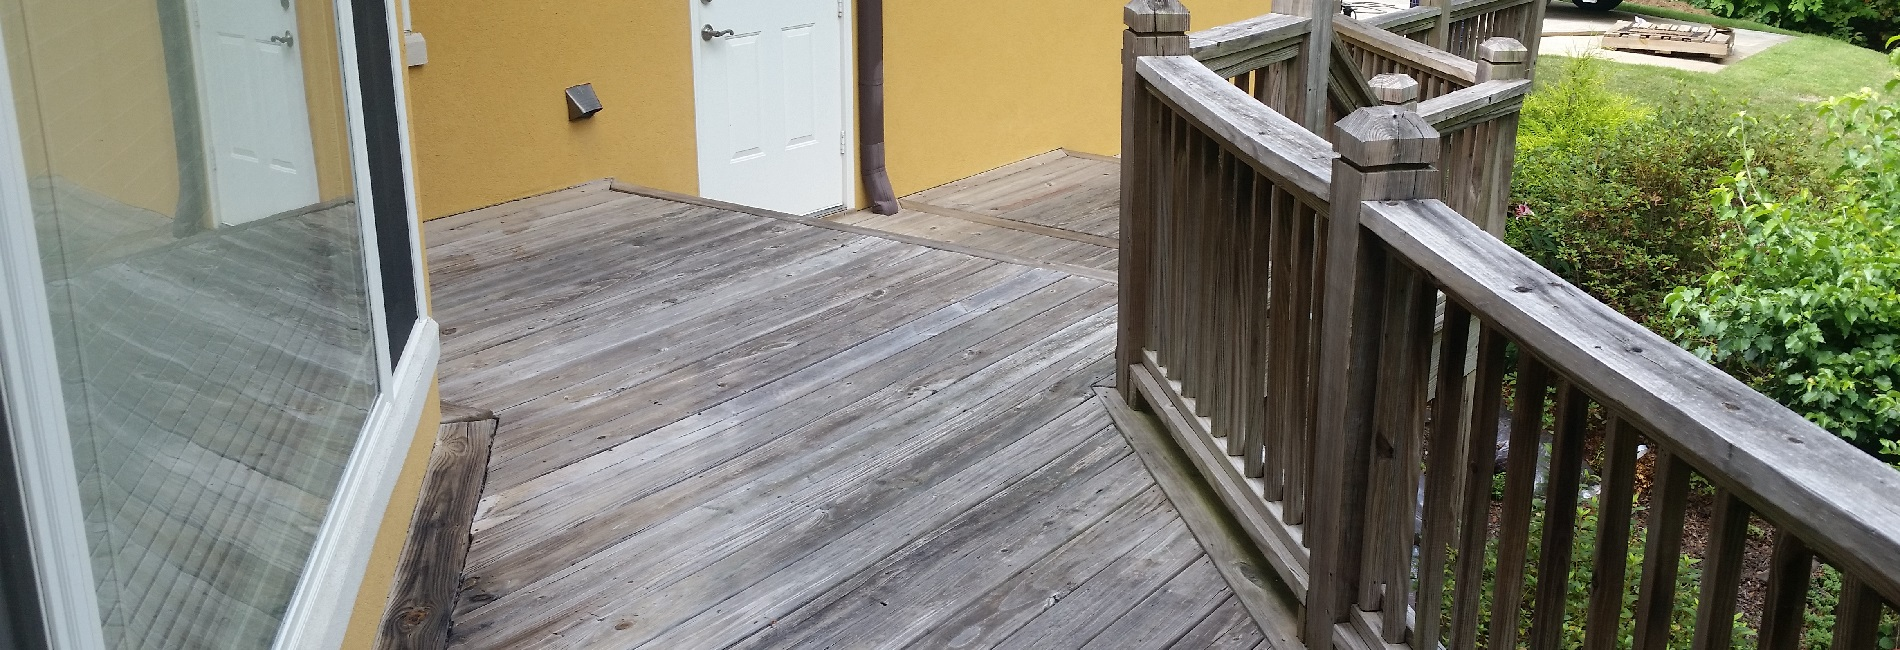 A deck this has weathered and lost it appearance due to lack of deck staining. Deck pressure washing can remove these grey fibers.